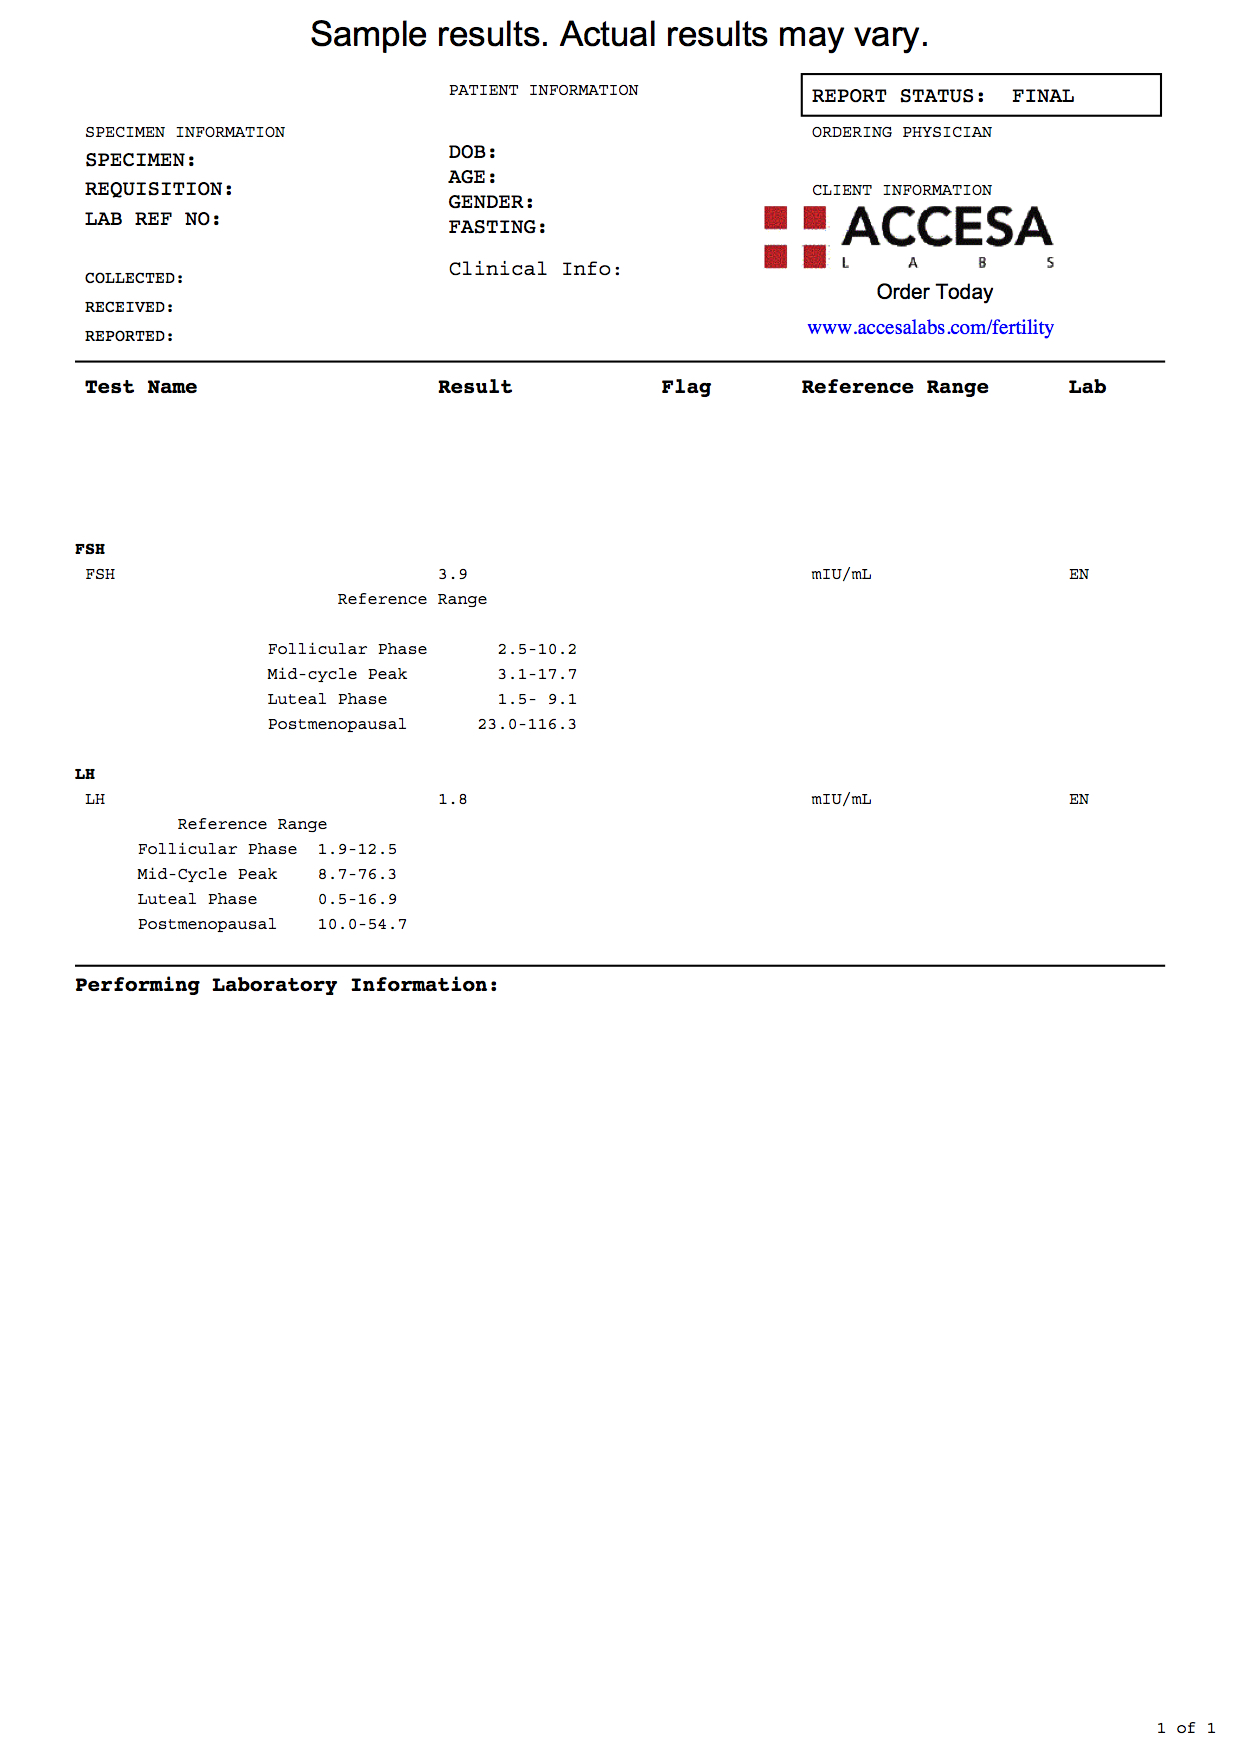 Ovulation Panel Sample Report